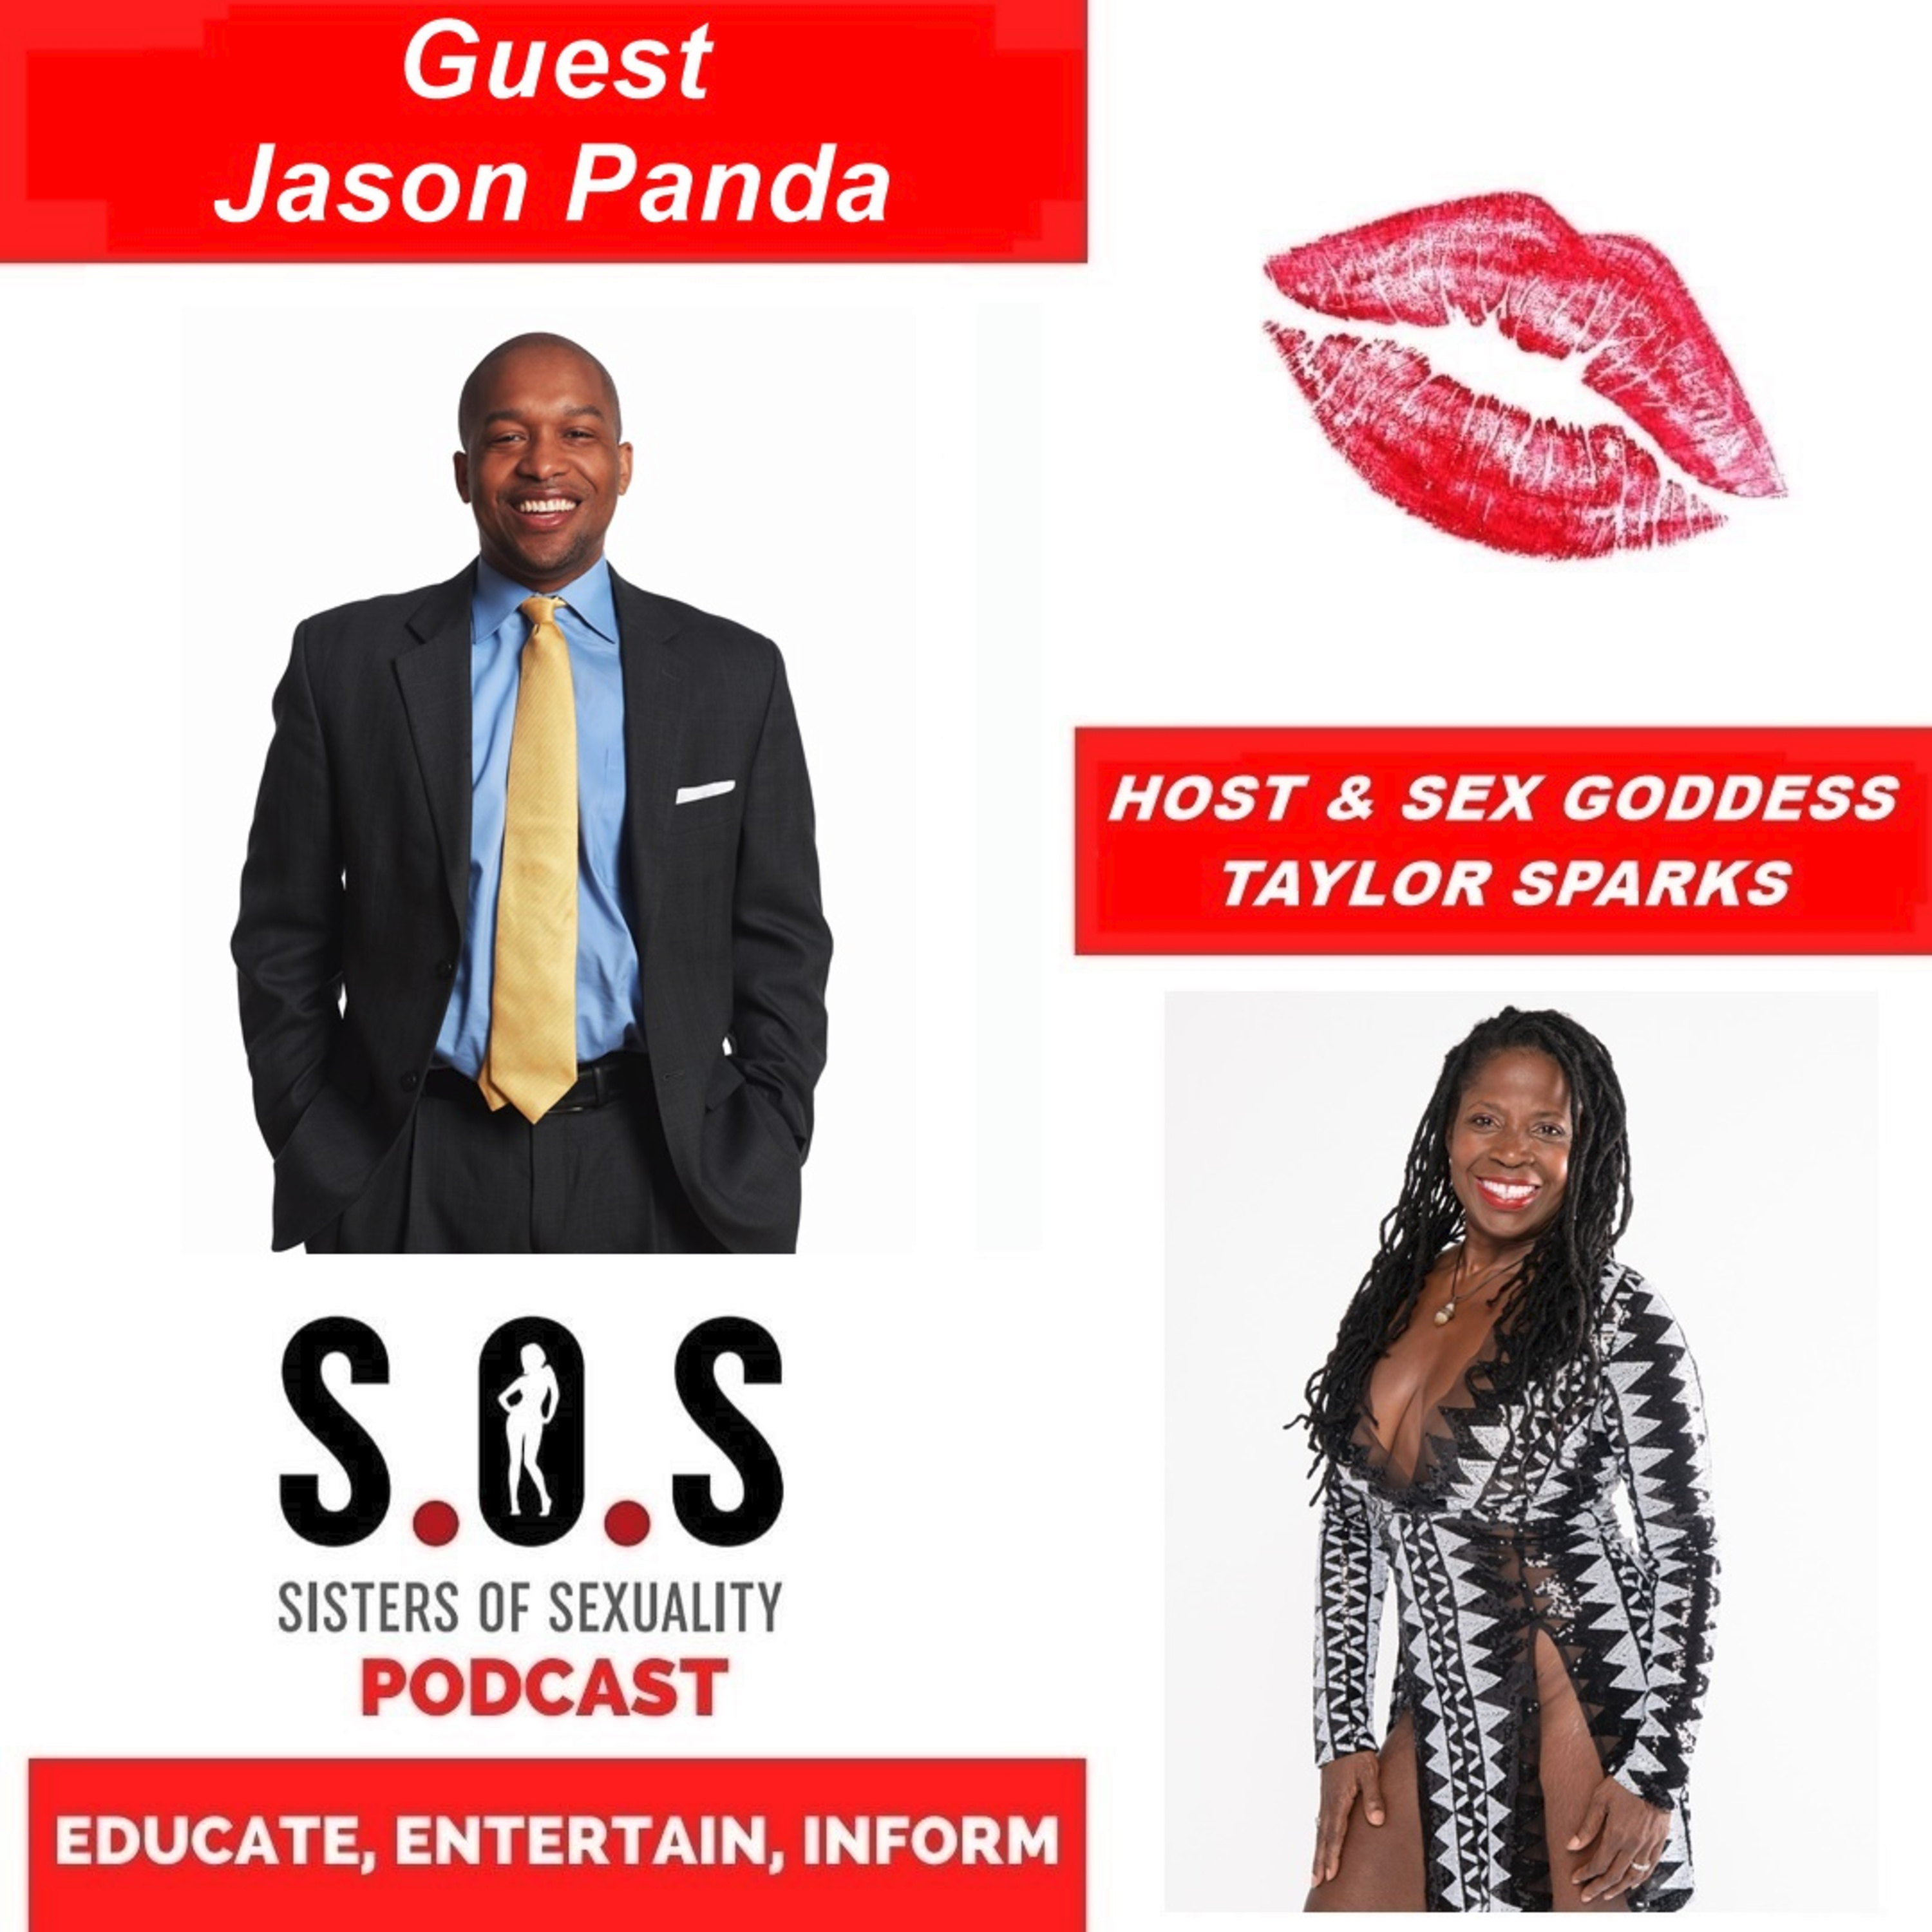 Sisters of Sexuality: Five Shades Of Play - Only Black Owned Condom Company Founder, Jason Panda, Brings His Own Chair To The Table of the $7 Billion Dollar Industry